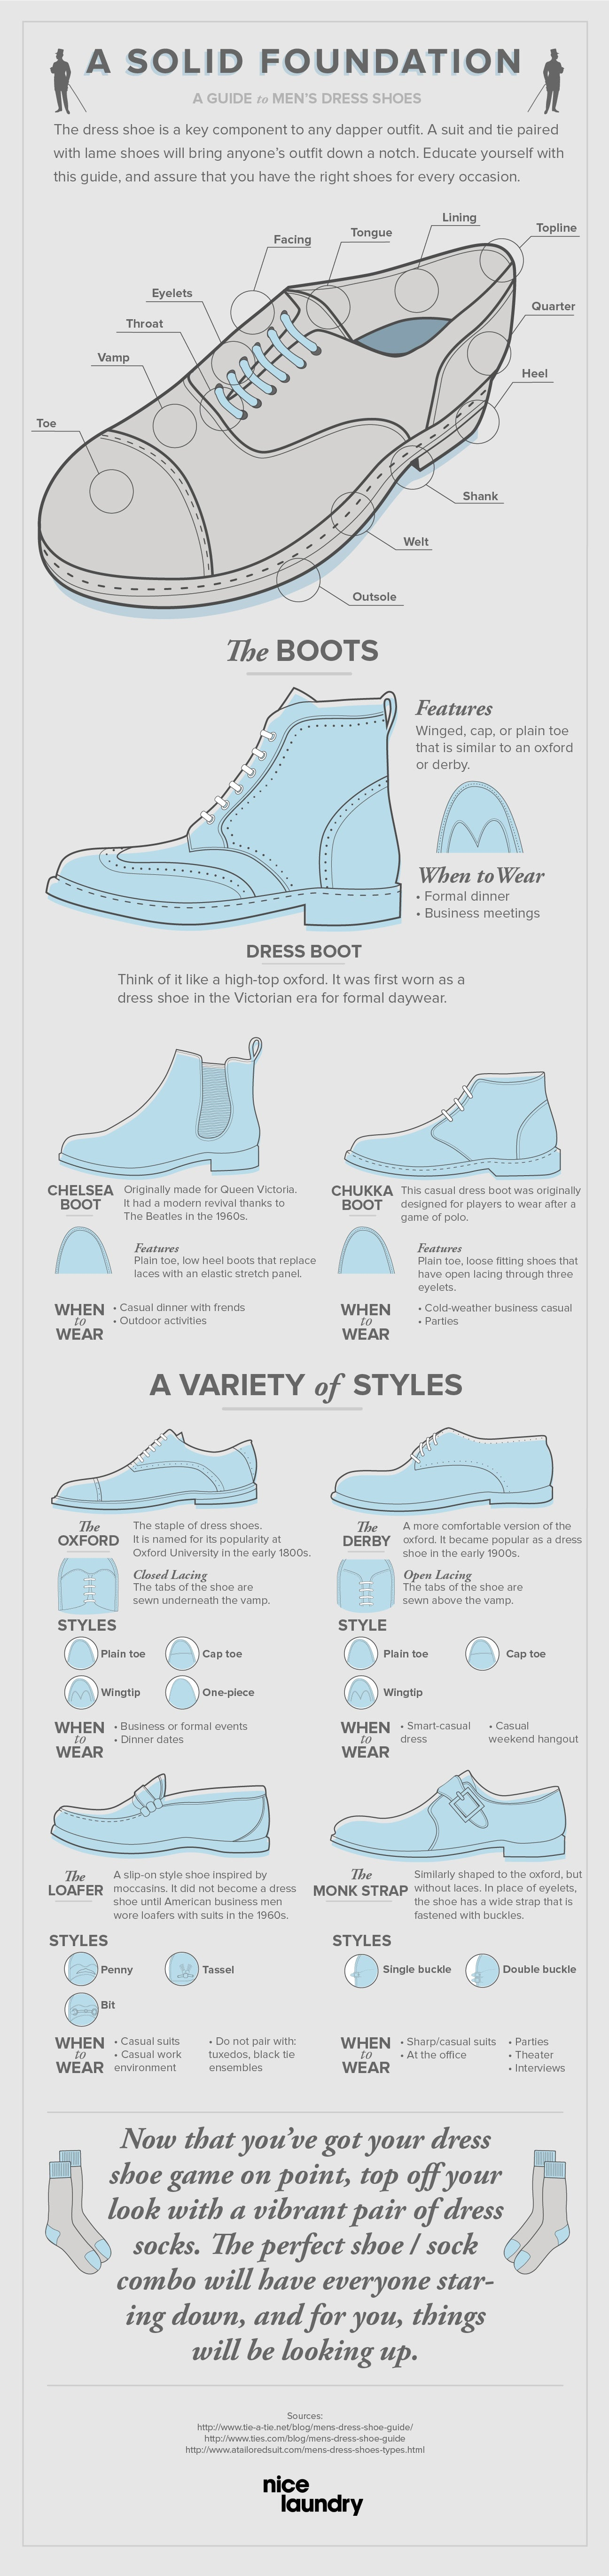 style guide dress shoes brands